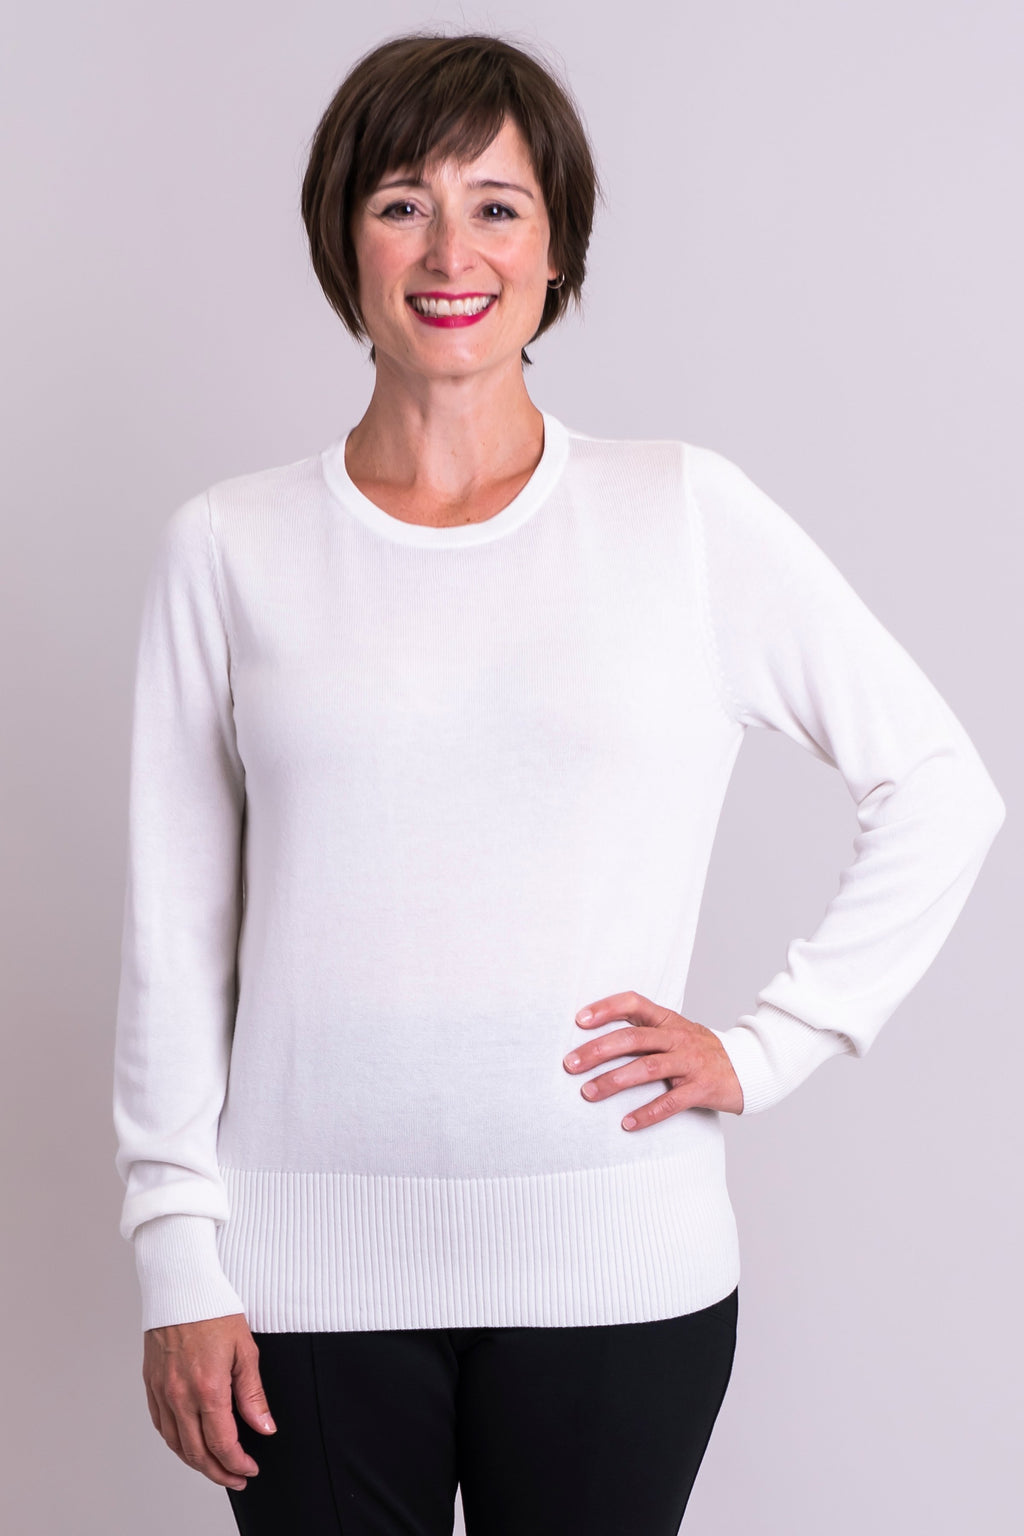 Maureen Sweater, White, Bamboo Cotton - Blue Sky Clothing Co